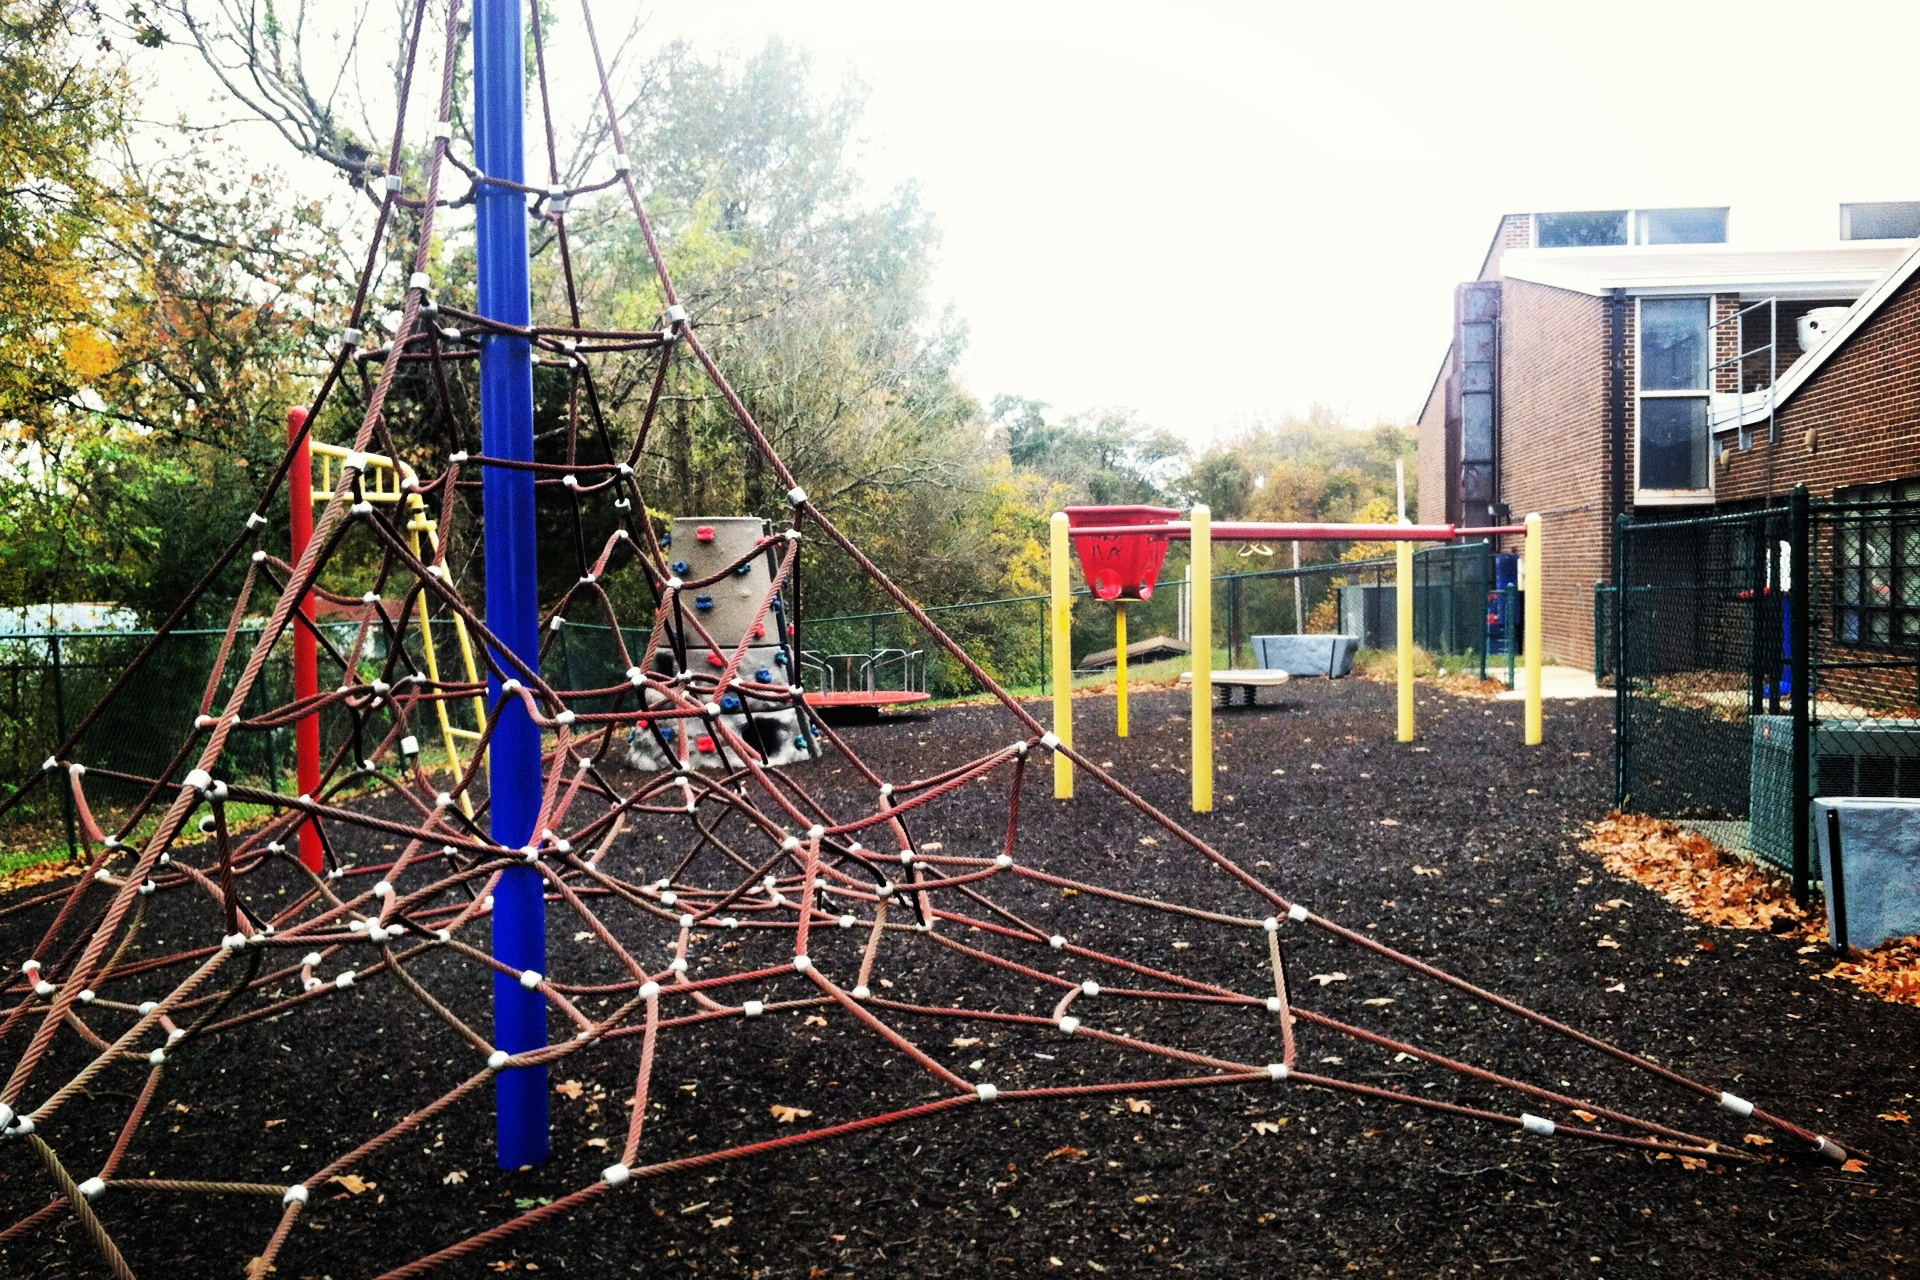 W.D. Hill Recreation Center Rope Jungle Gym